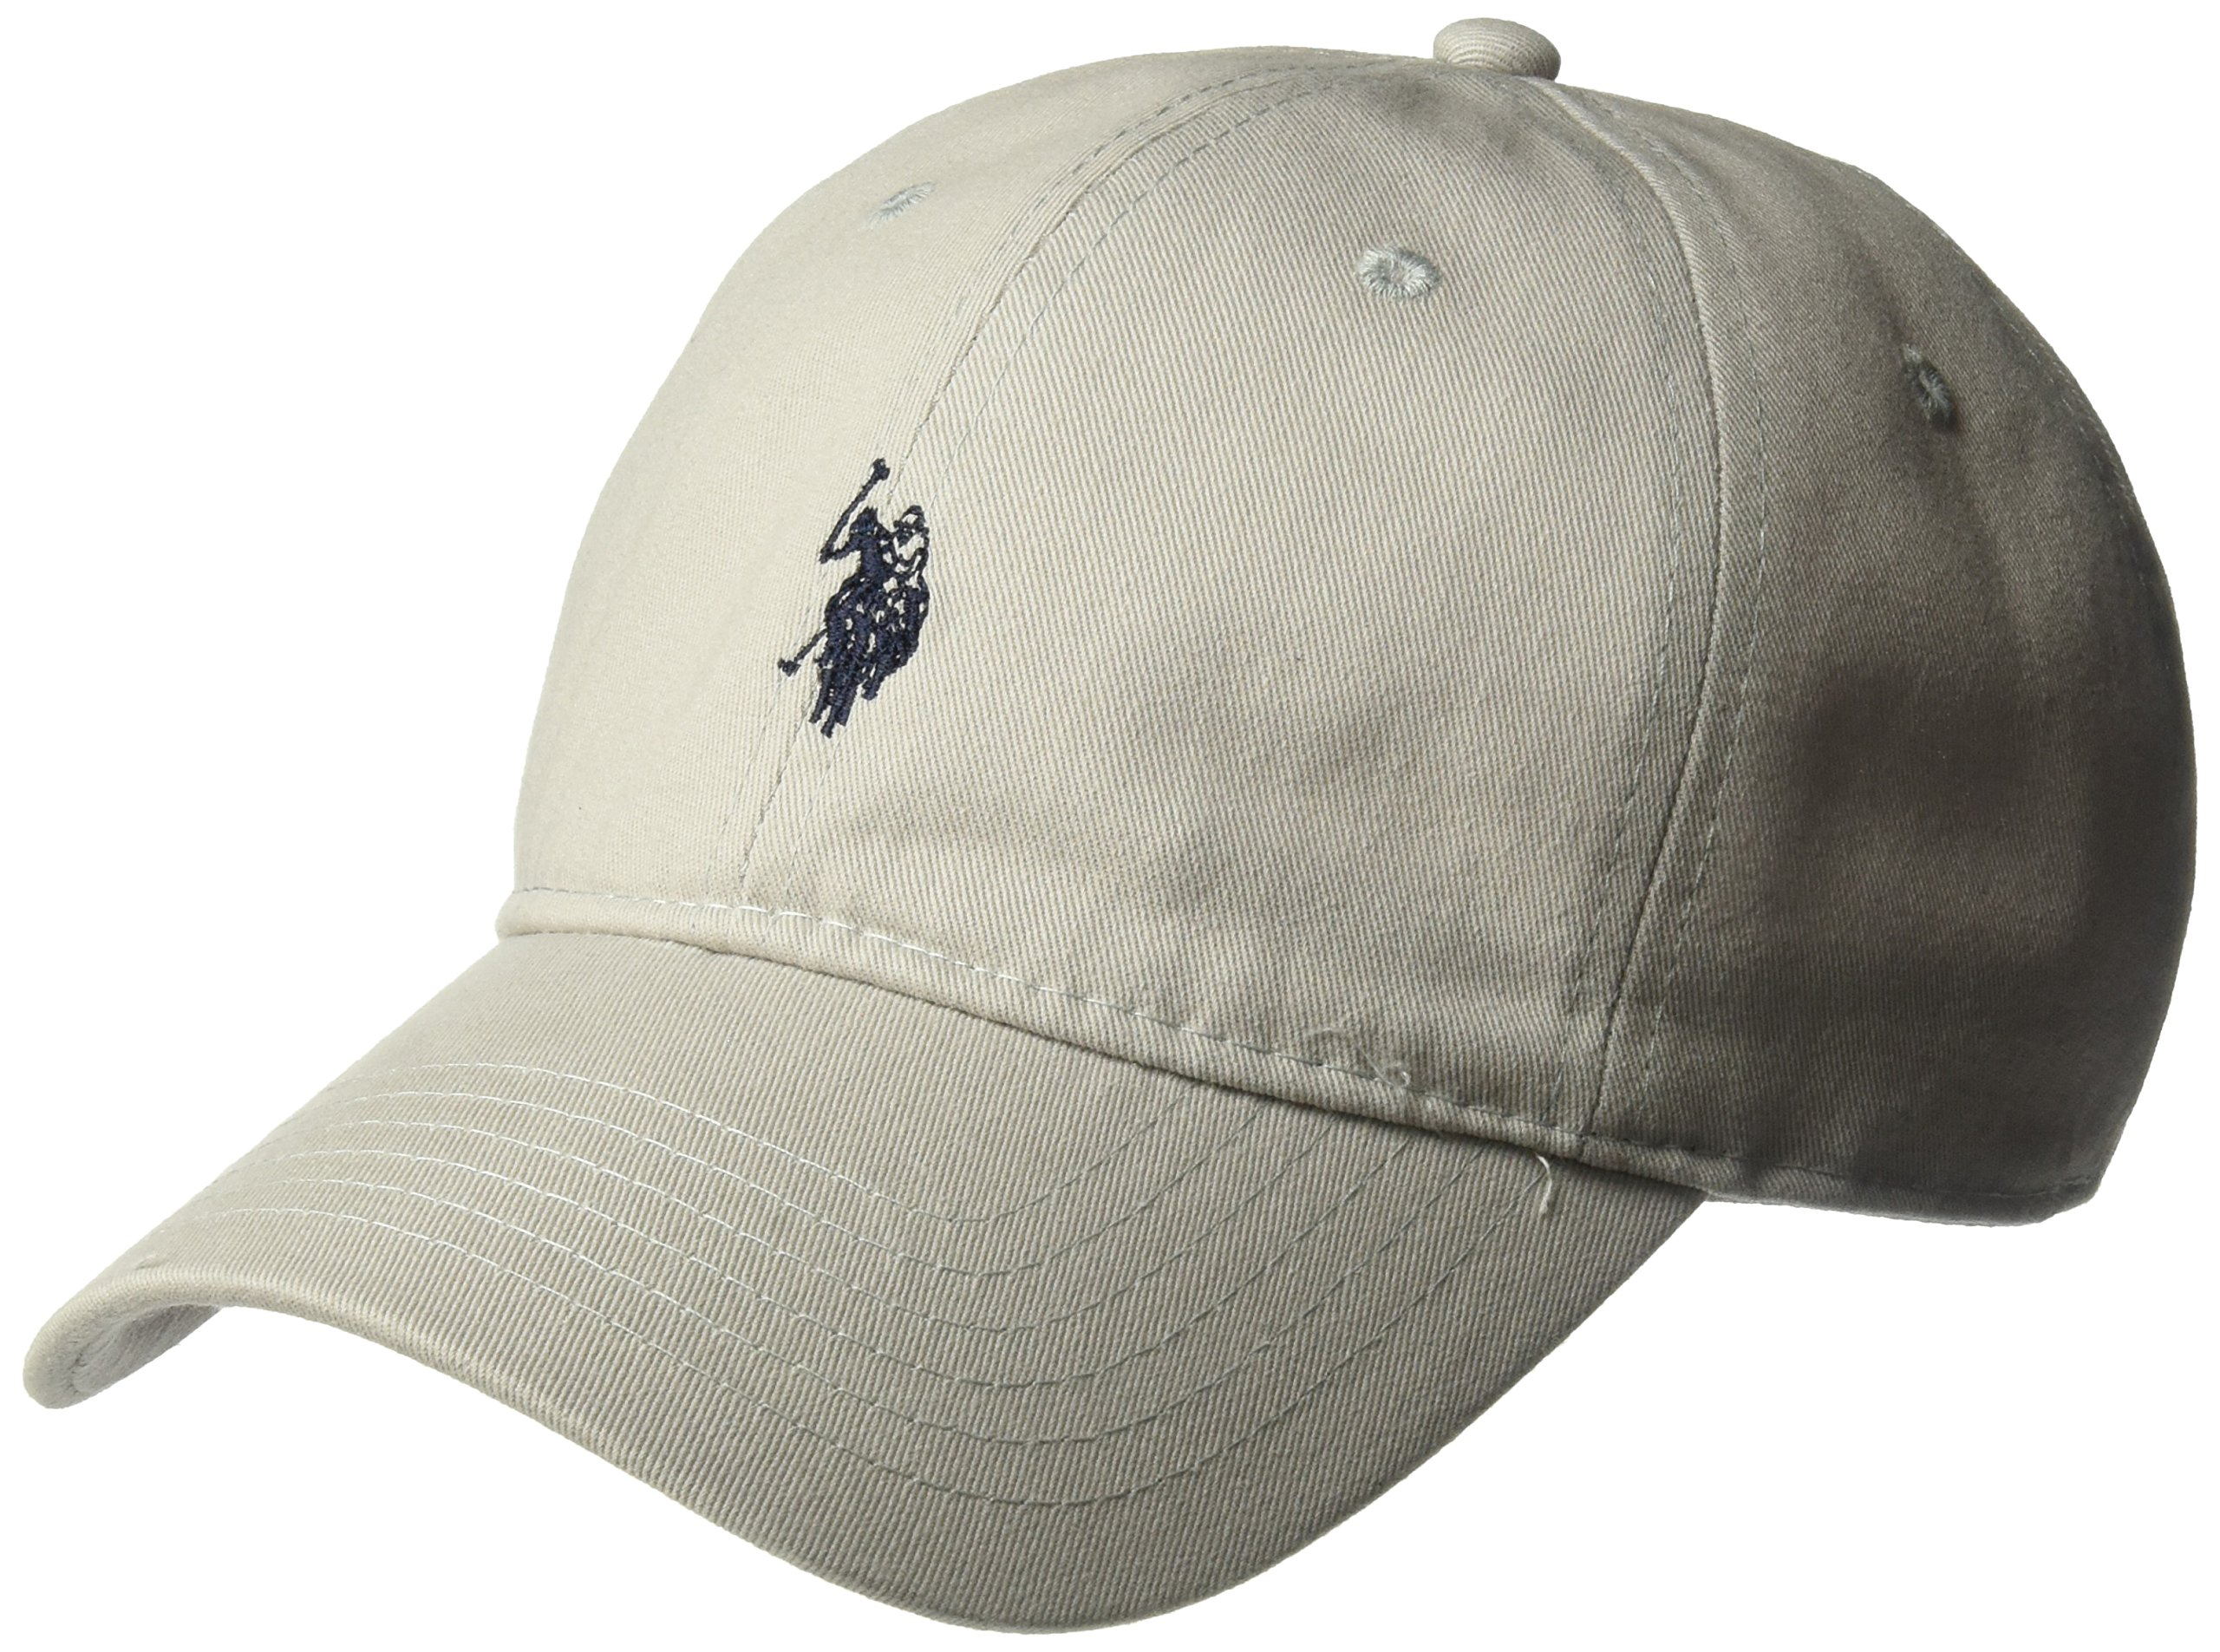 Galleon - U.S. Polo Assn. Men s Washed Twill Baseball Cap 34dcead26d5e